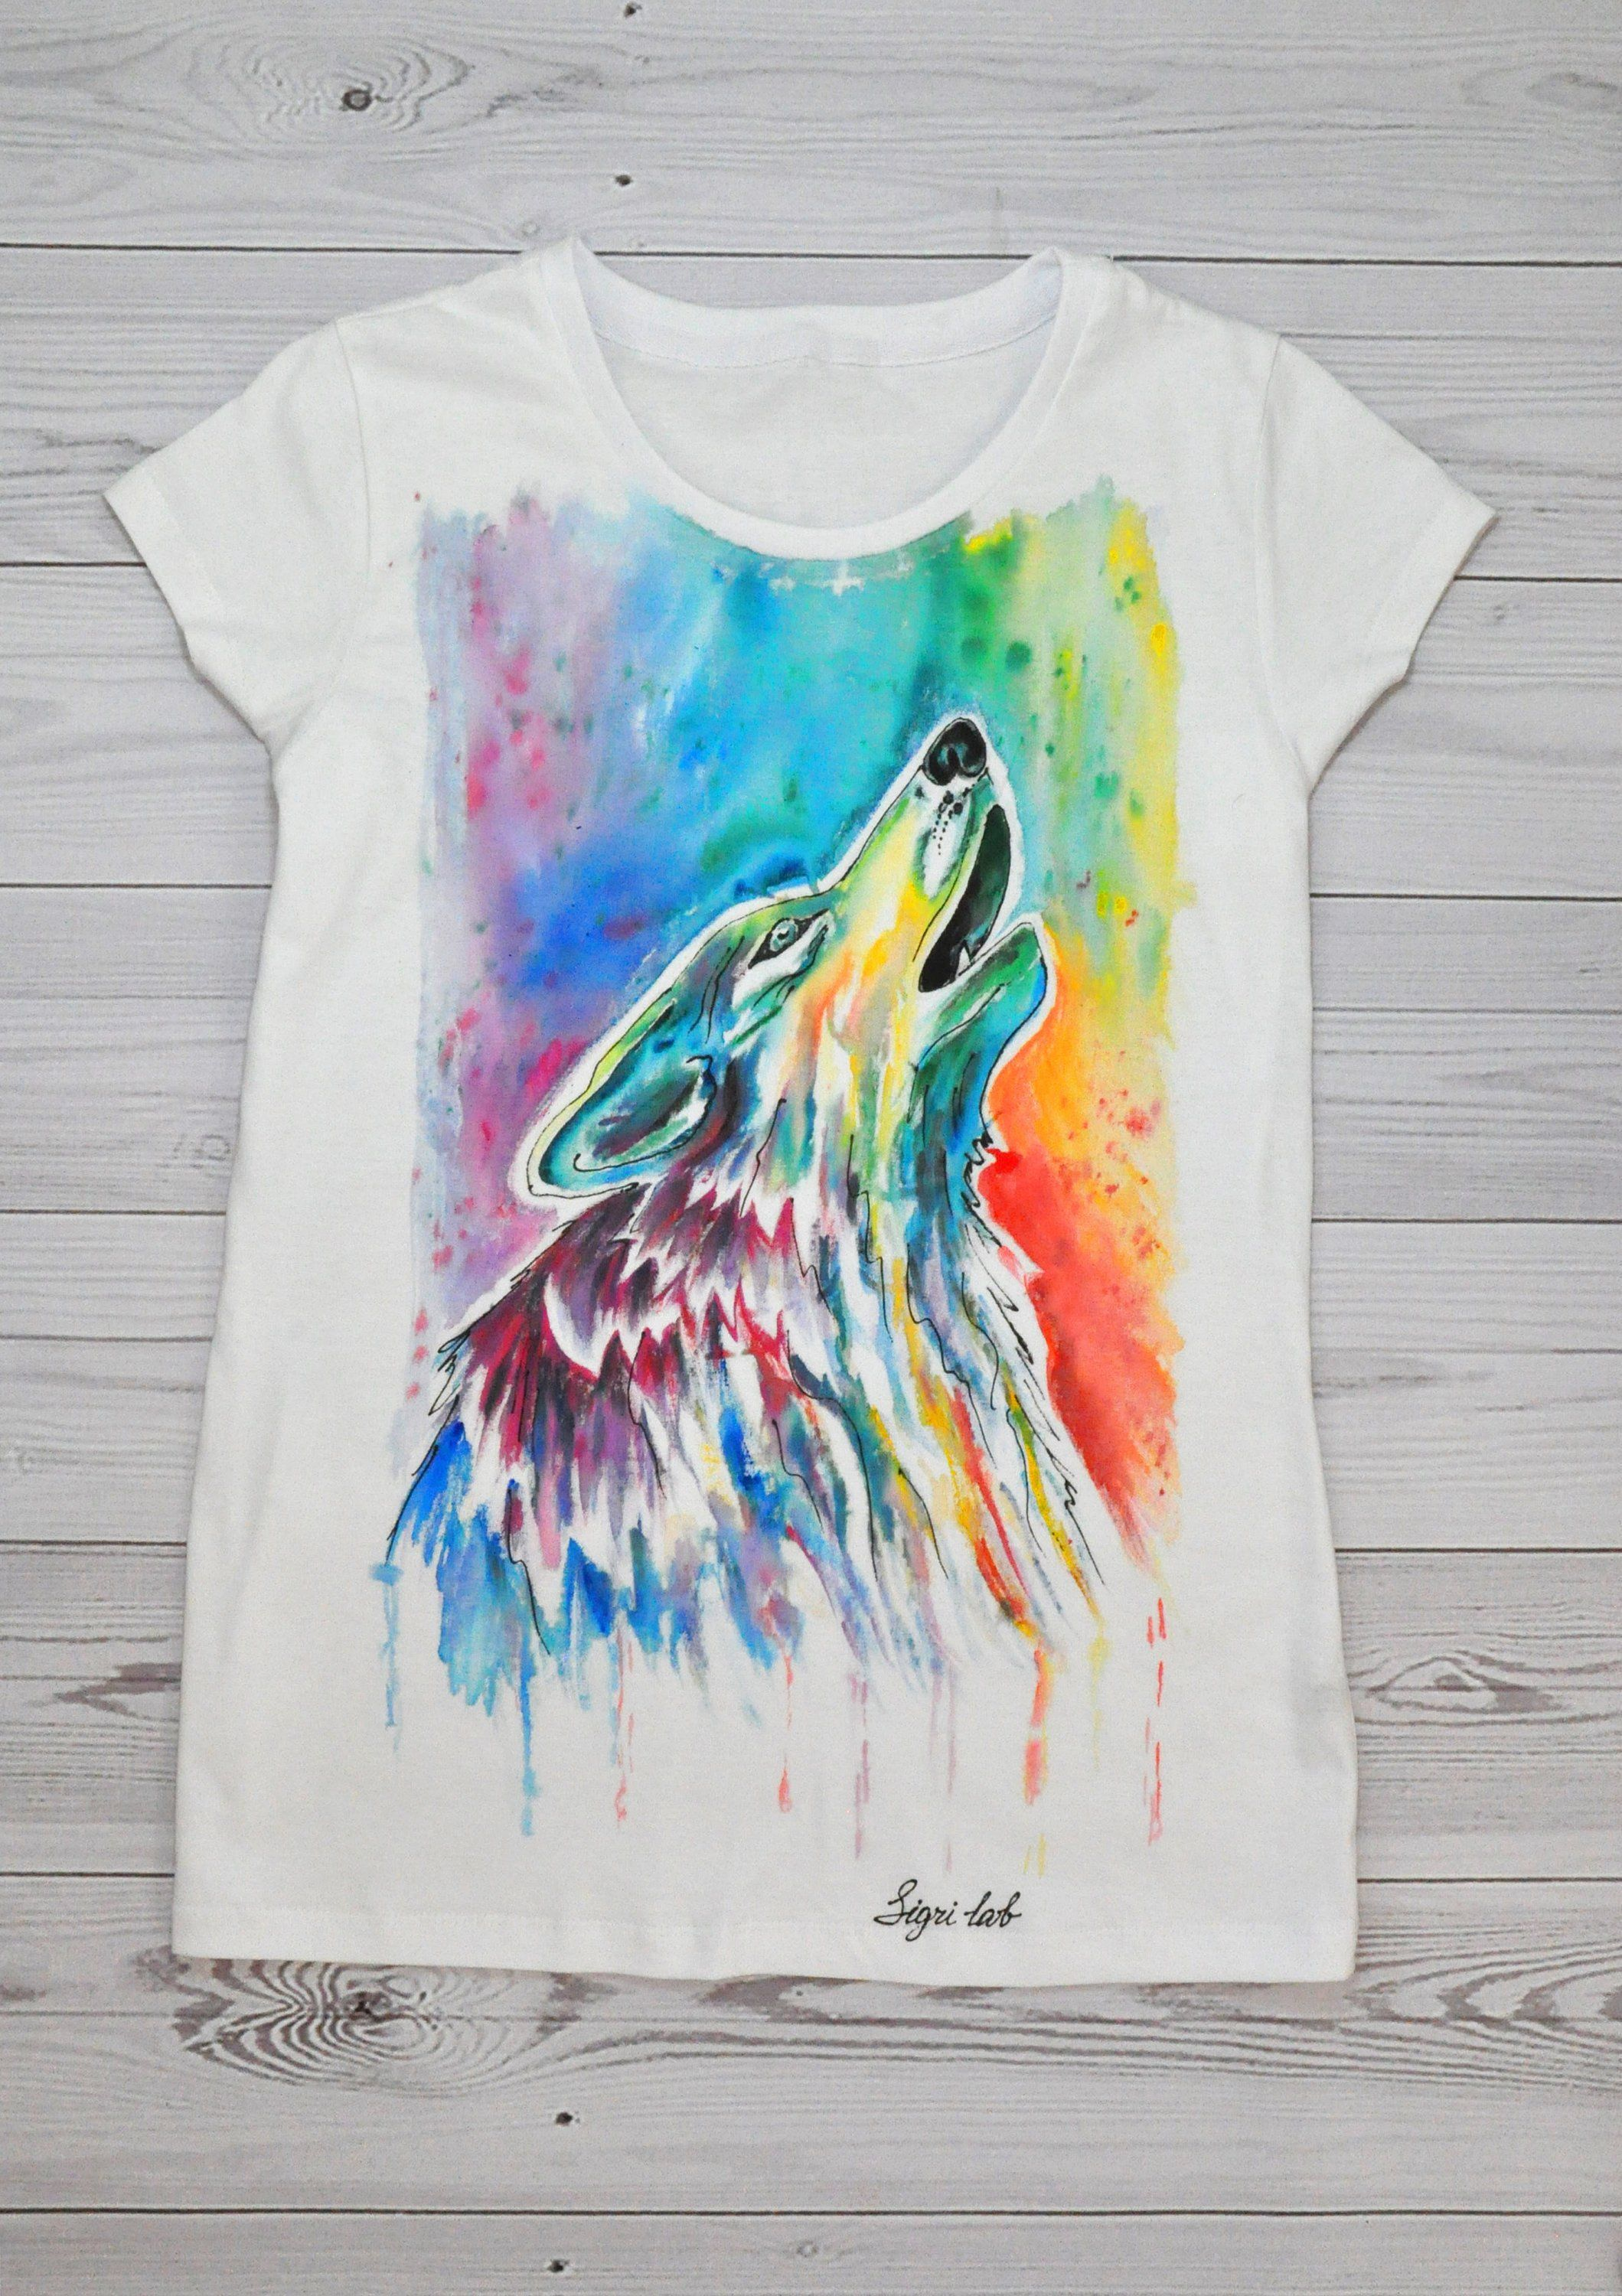 Hand Painted T Shirt 100 Hand Made In Stock Or On Order 100